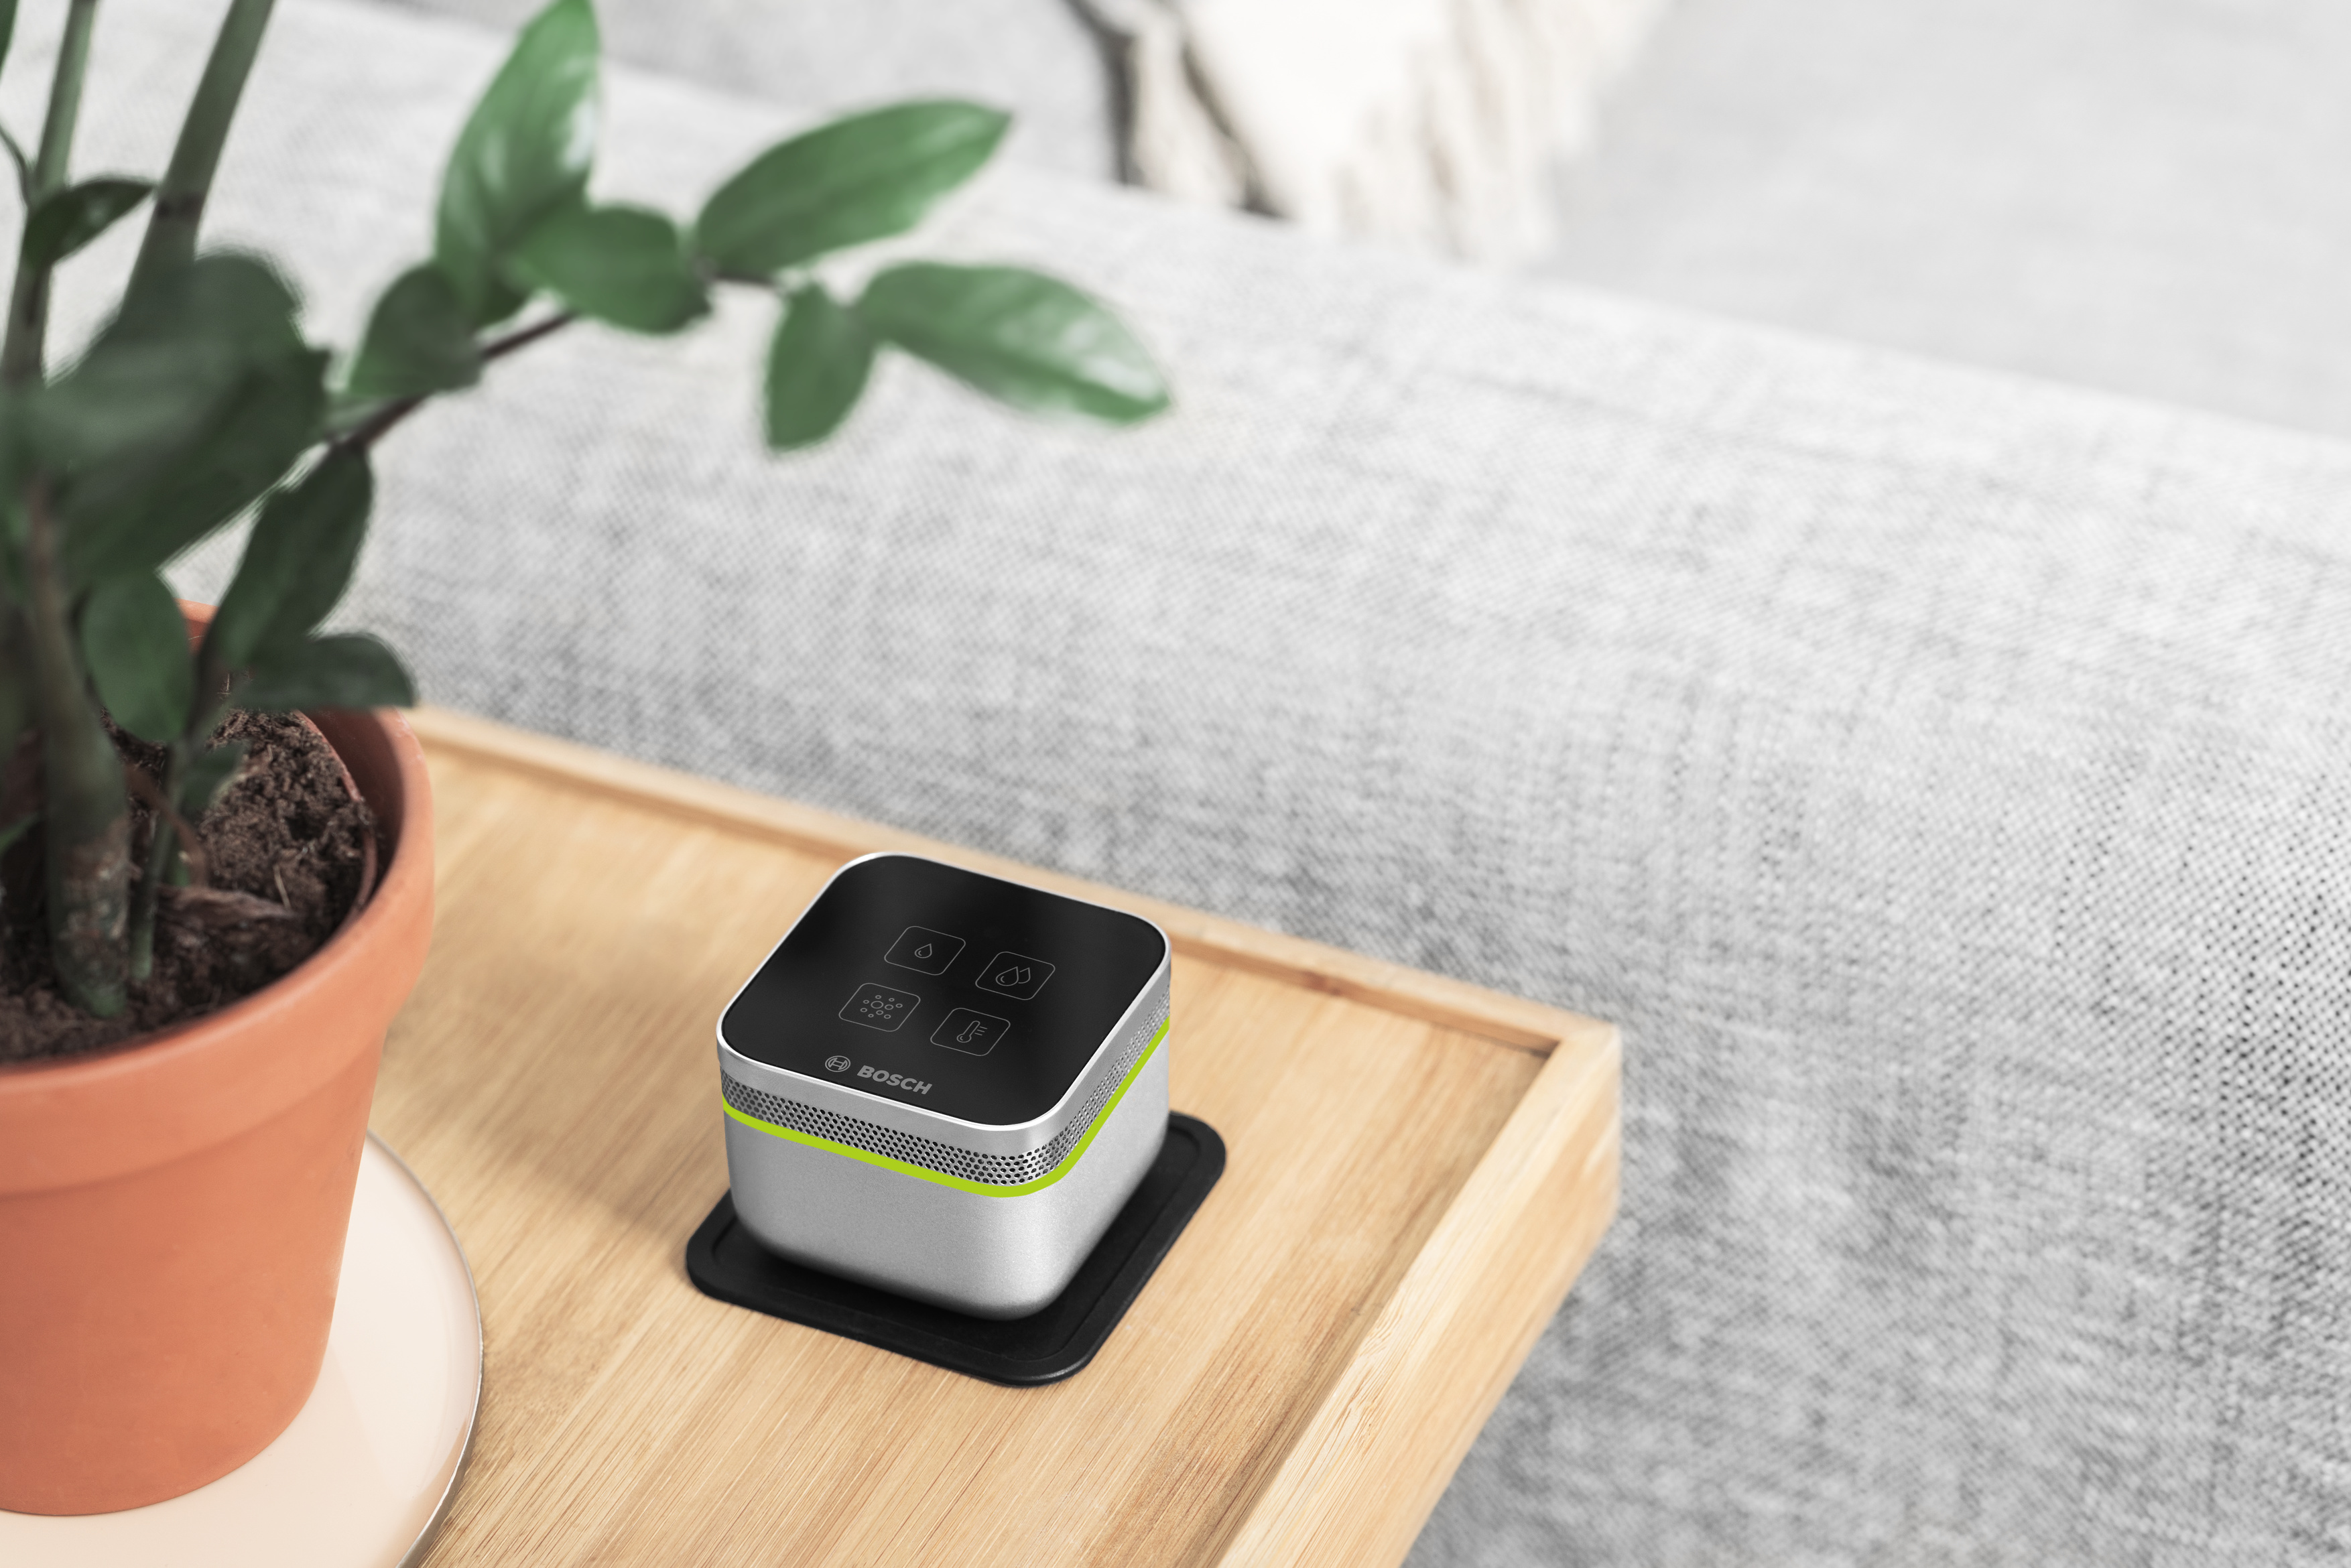 Bosch Smart Home AIR Mobile Well-being Sensor